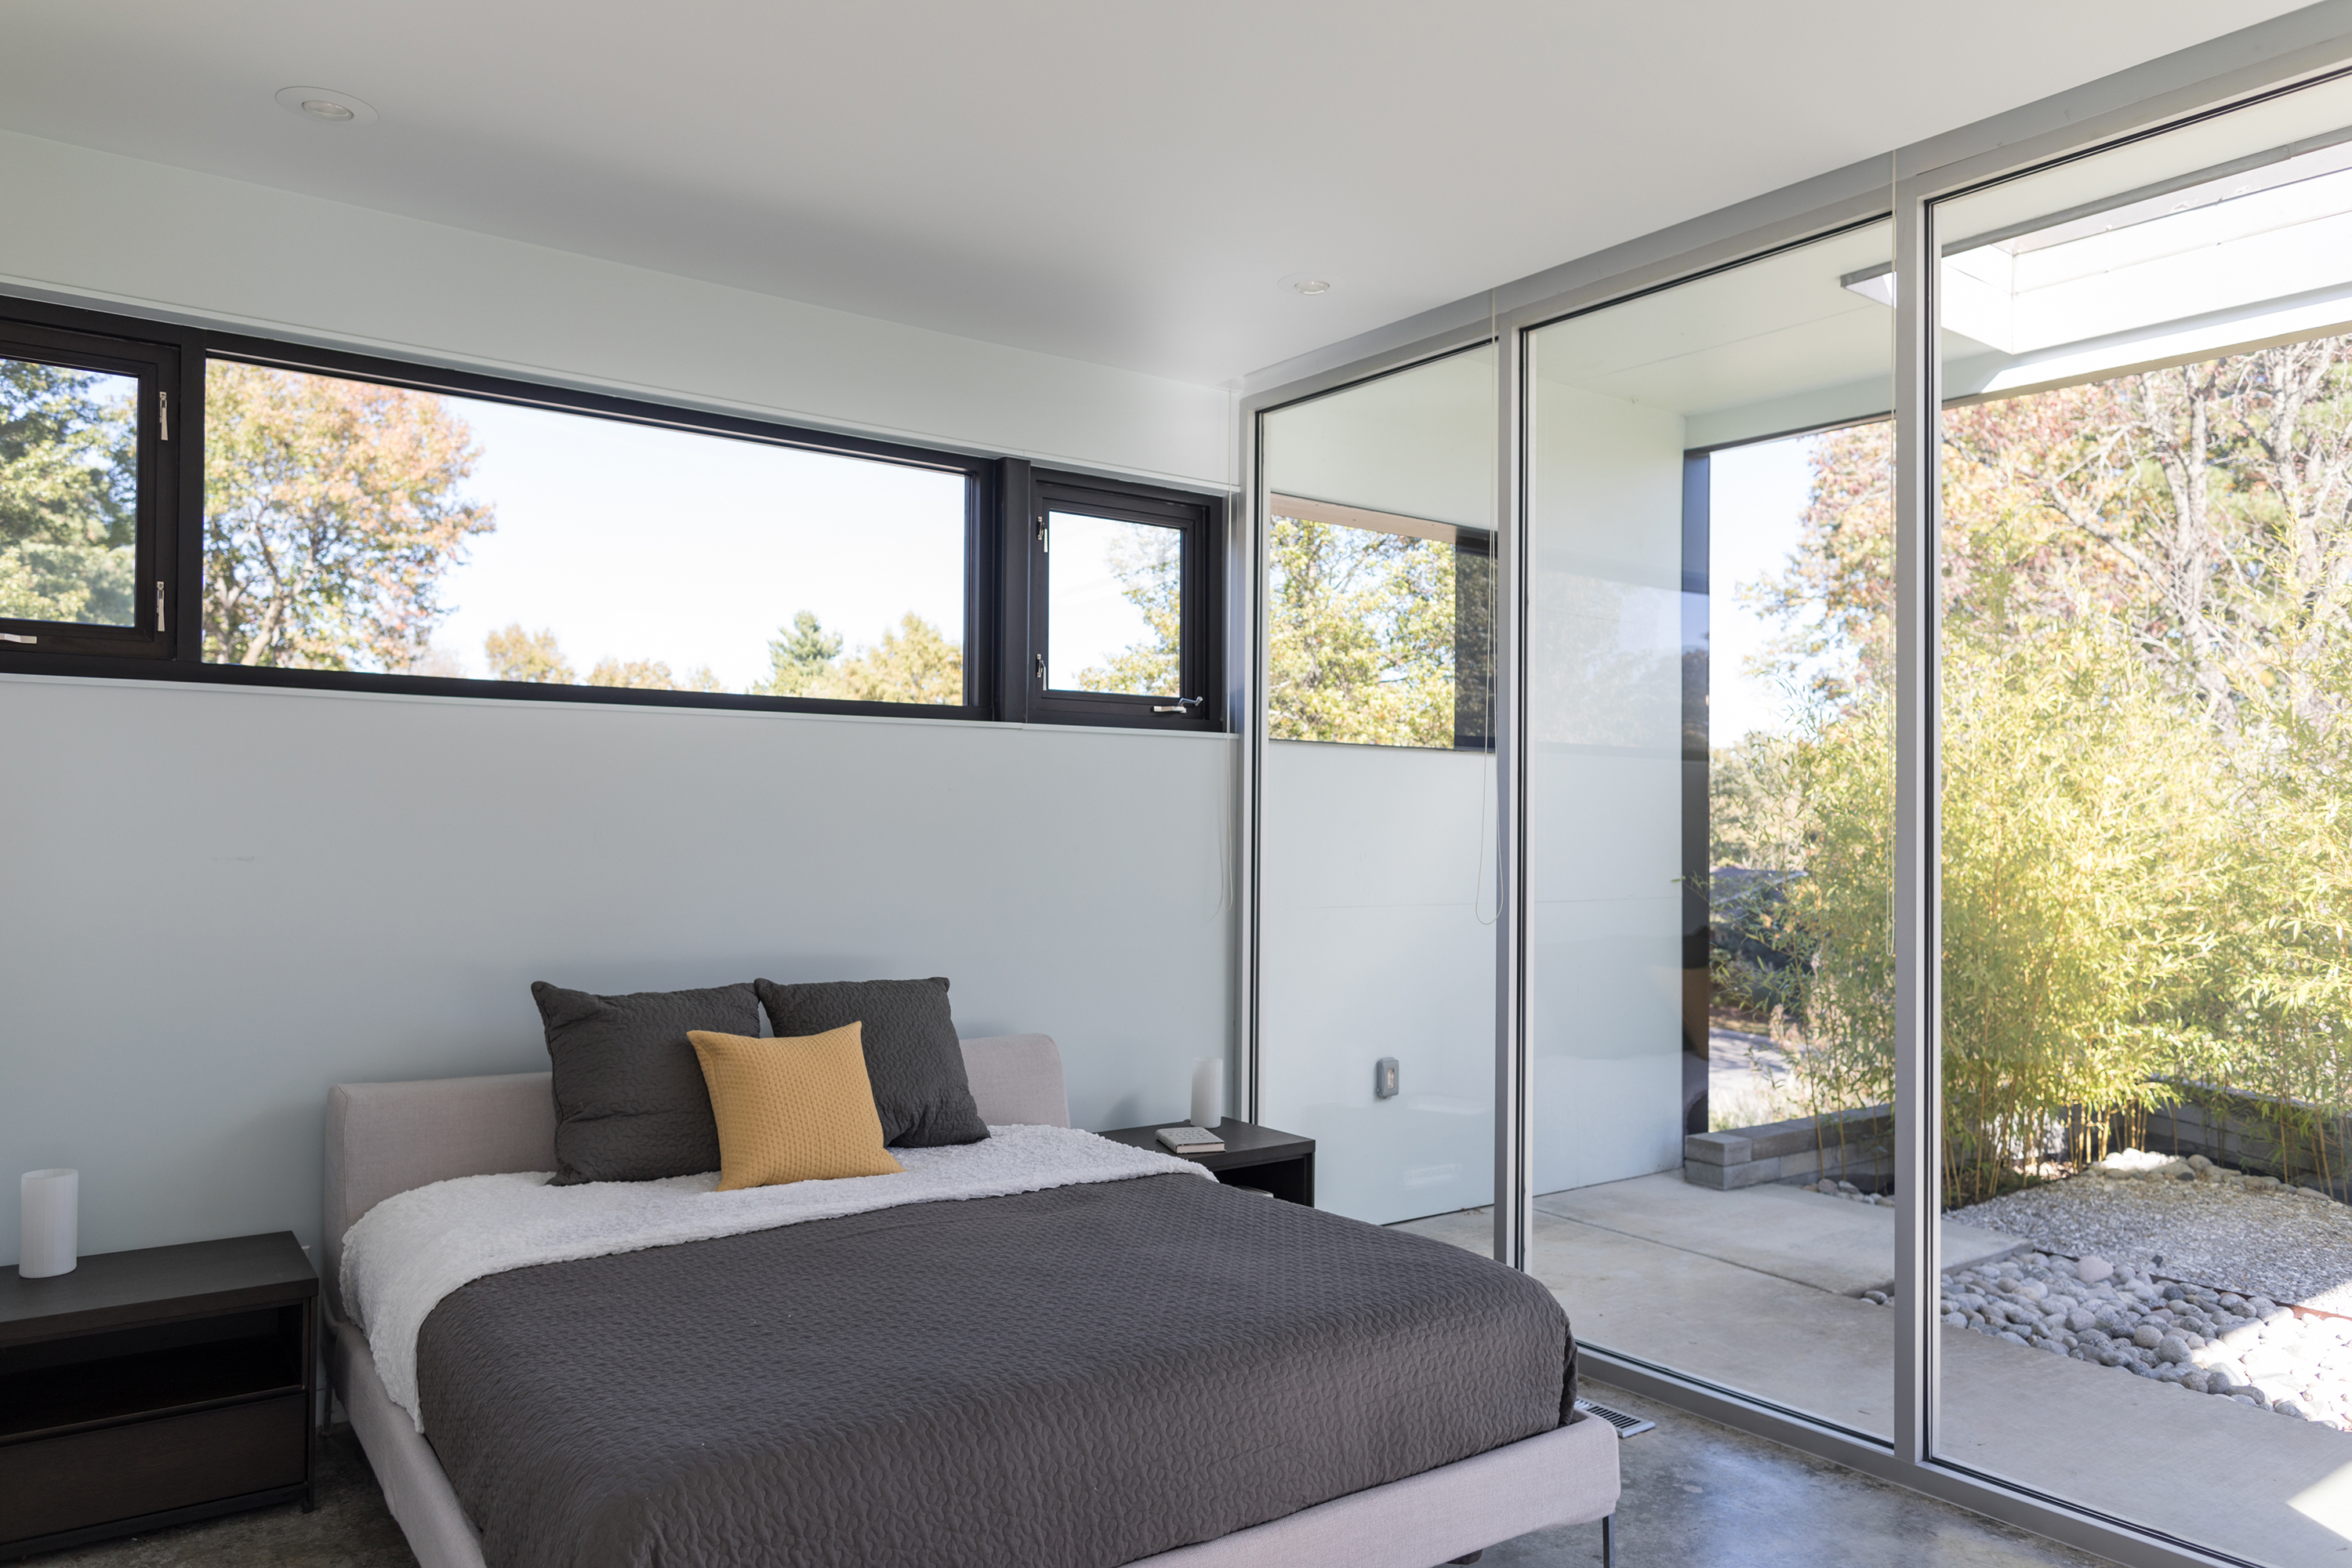 A low, modern tan bed with gray bedding sits beside a wall of glass doors. The yard is visible through the glass.